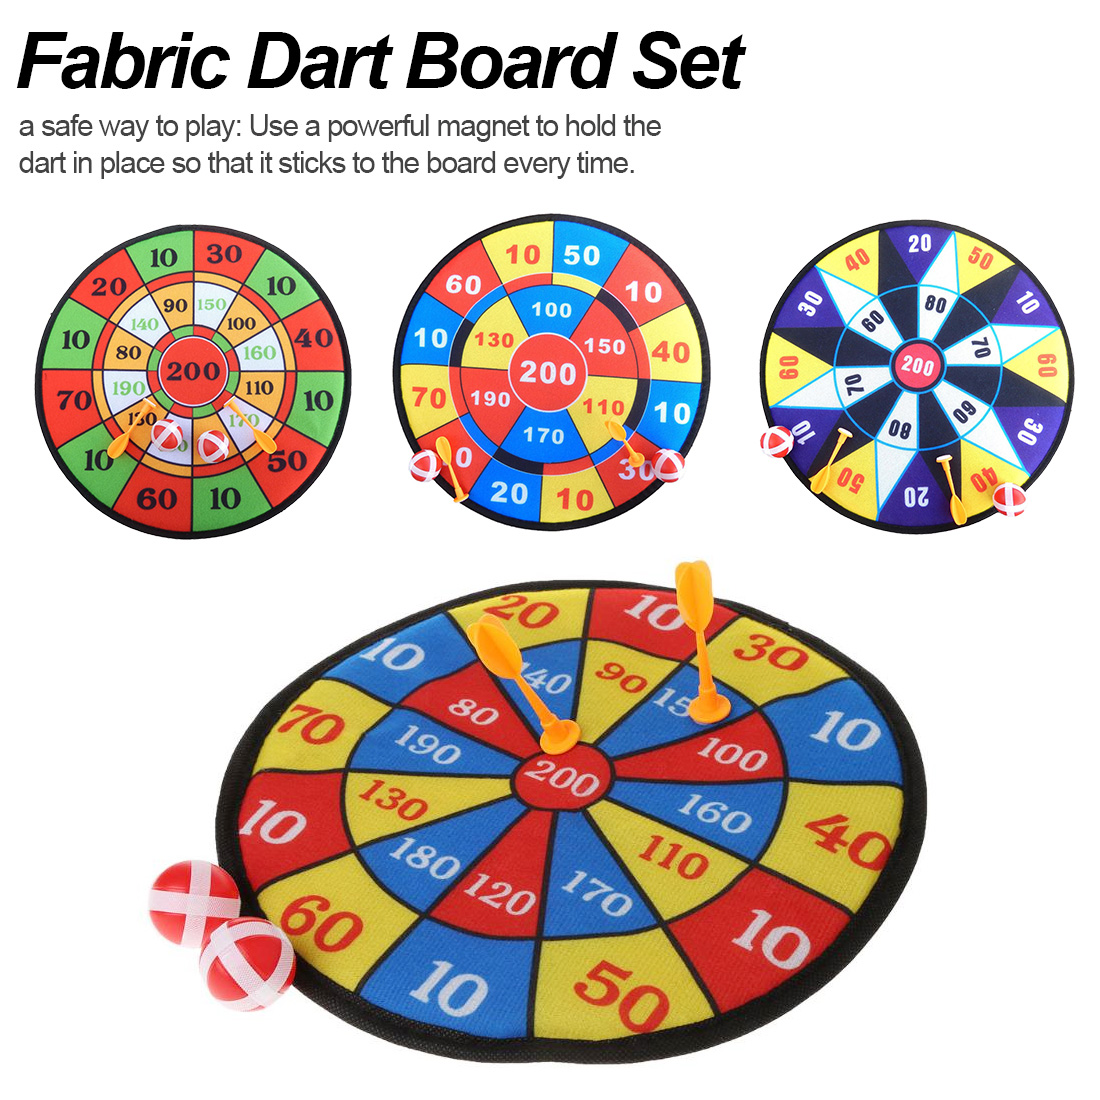 Sports Toys Fabric Dart Board Set Kid Ball Target Game For Children Security Toy Gifts New